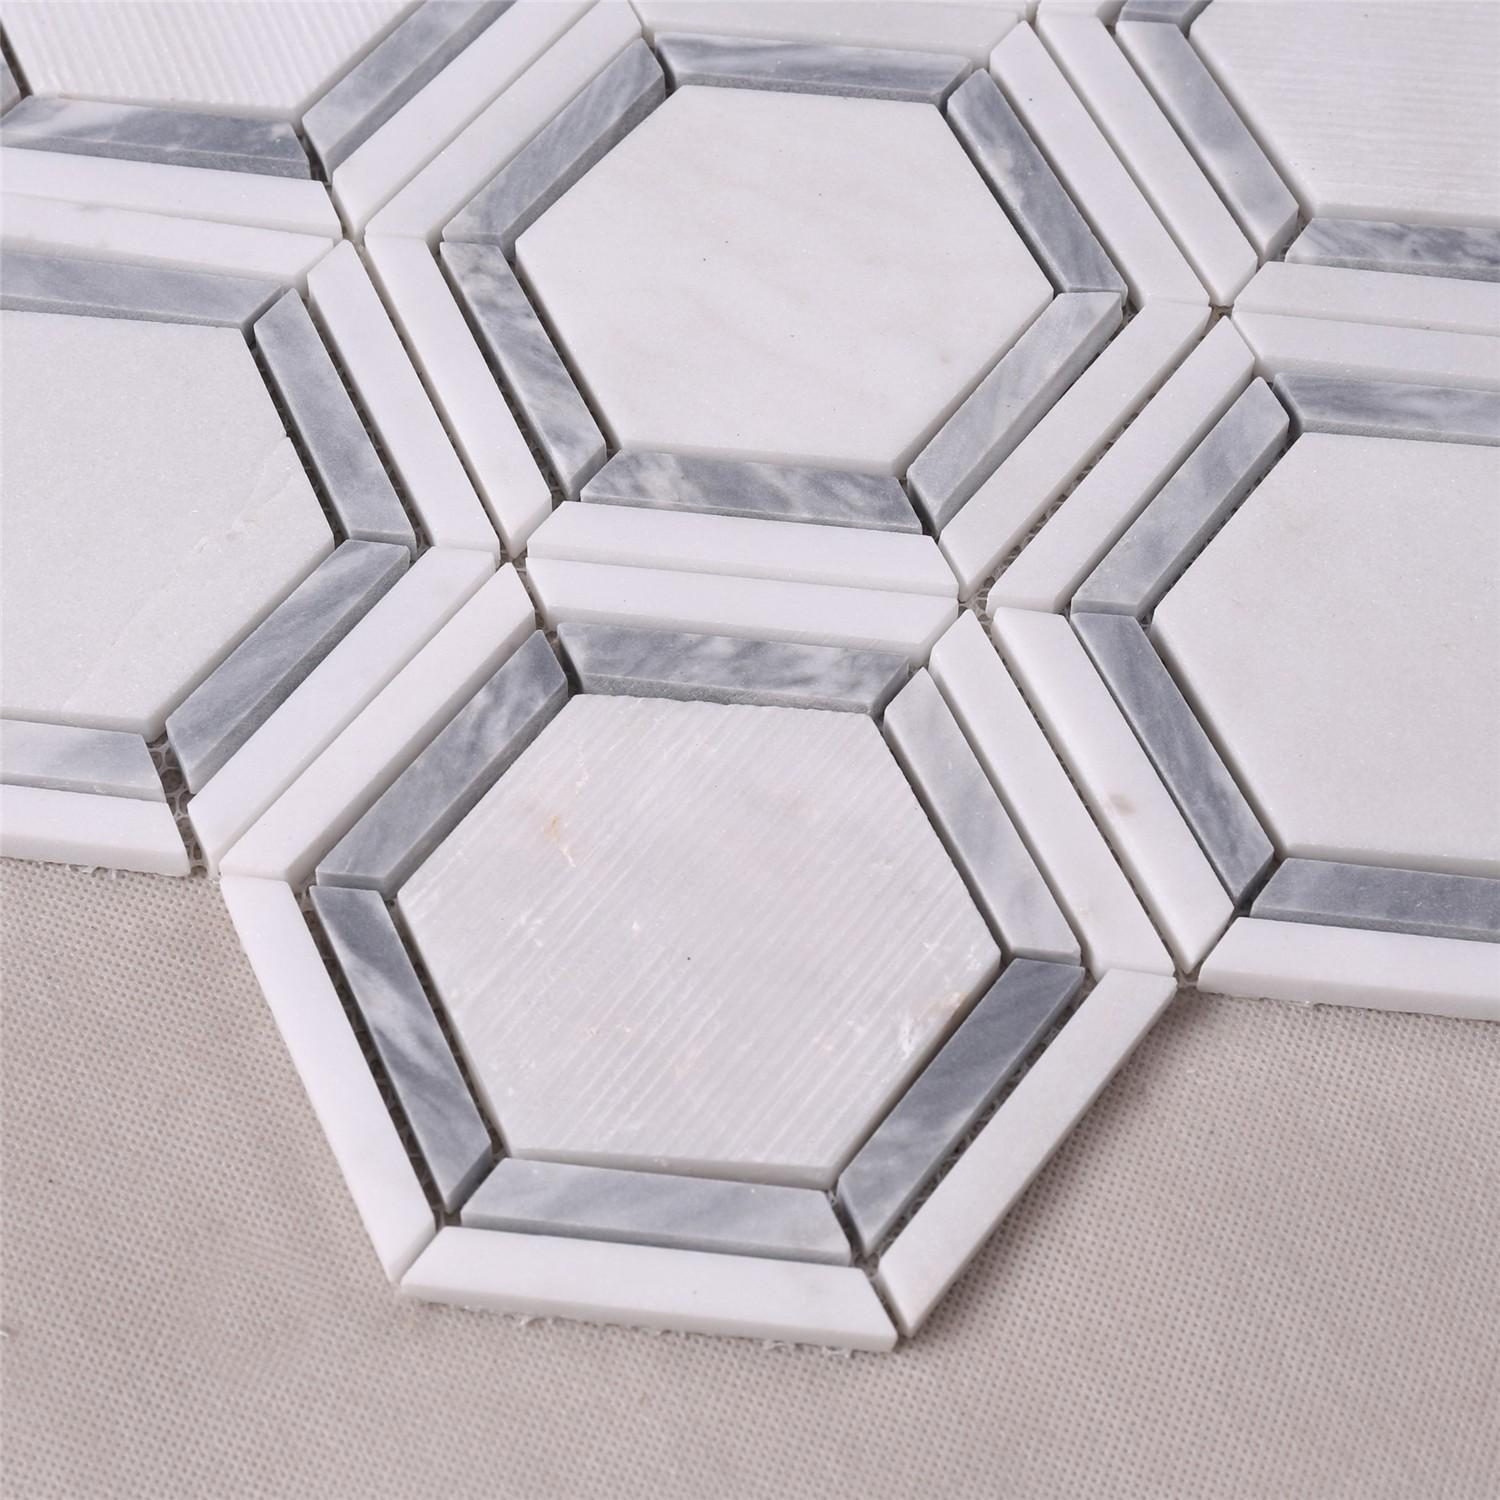 3x3 tile colors flower company for backsplash-3